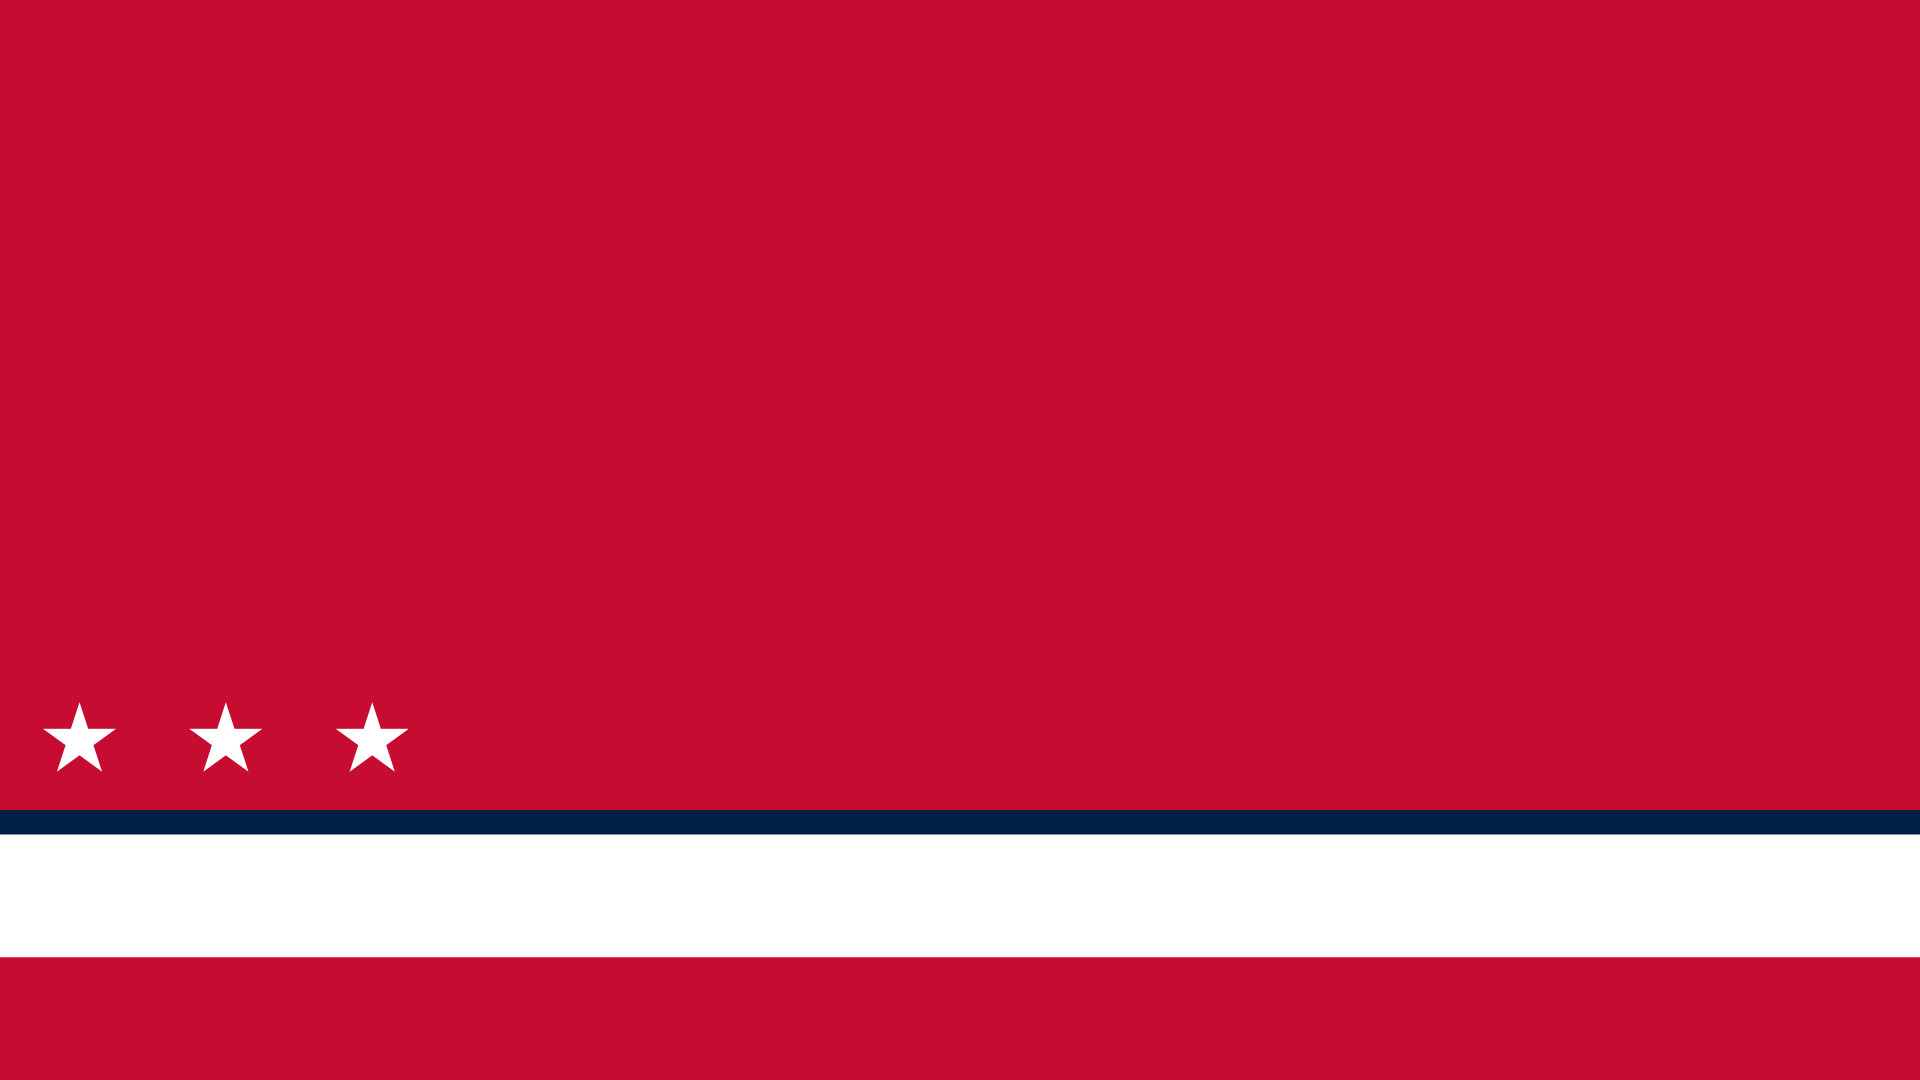 Washington Capitals: This is my favourite one, I used the sleeve as  inspiration, but just the bars was really lame, adding the stars just makes  it instantly …